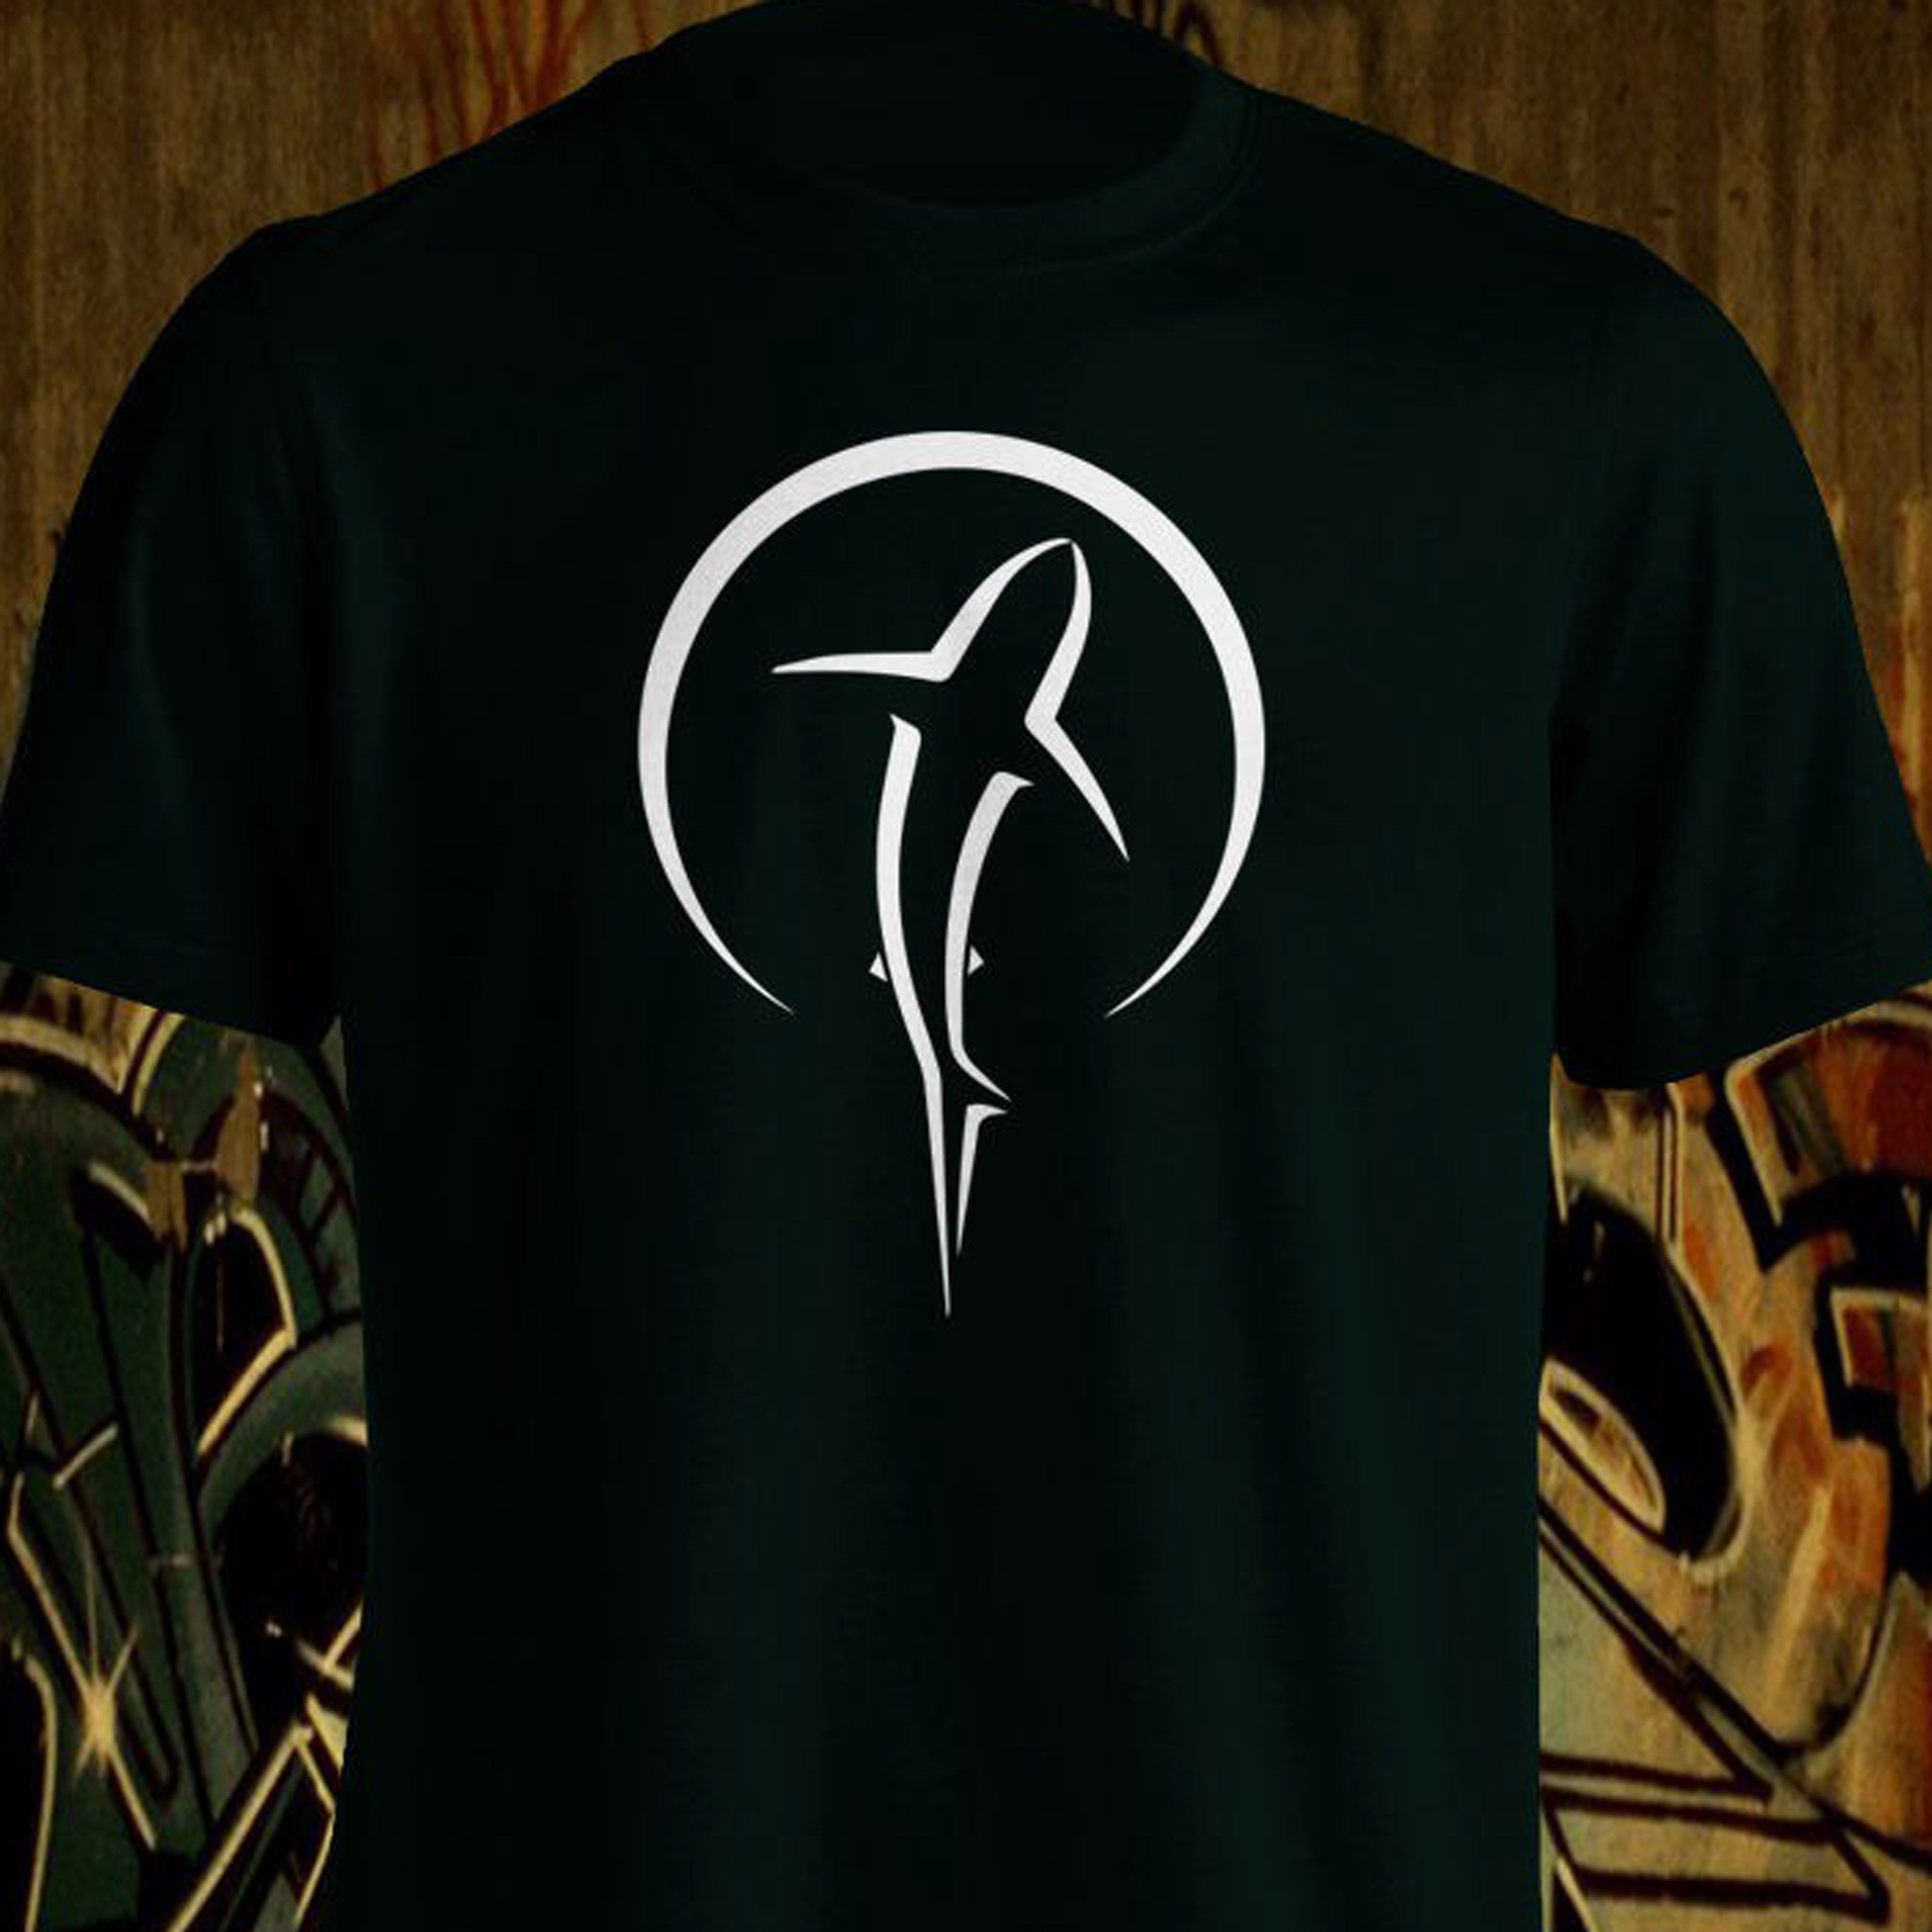 * Shark In Moon * Graphic T 100% Comfort Cotton ~ All Proceeds Go To Charity Fashion T Shirts Slim Fit O Neck 034702 image